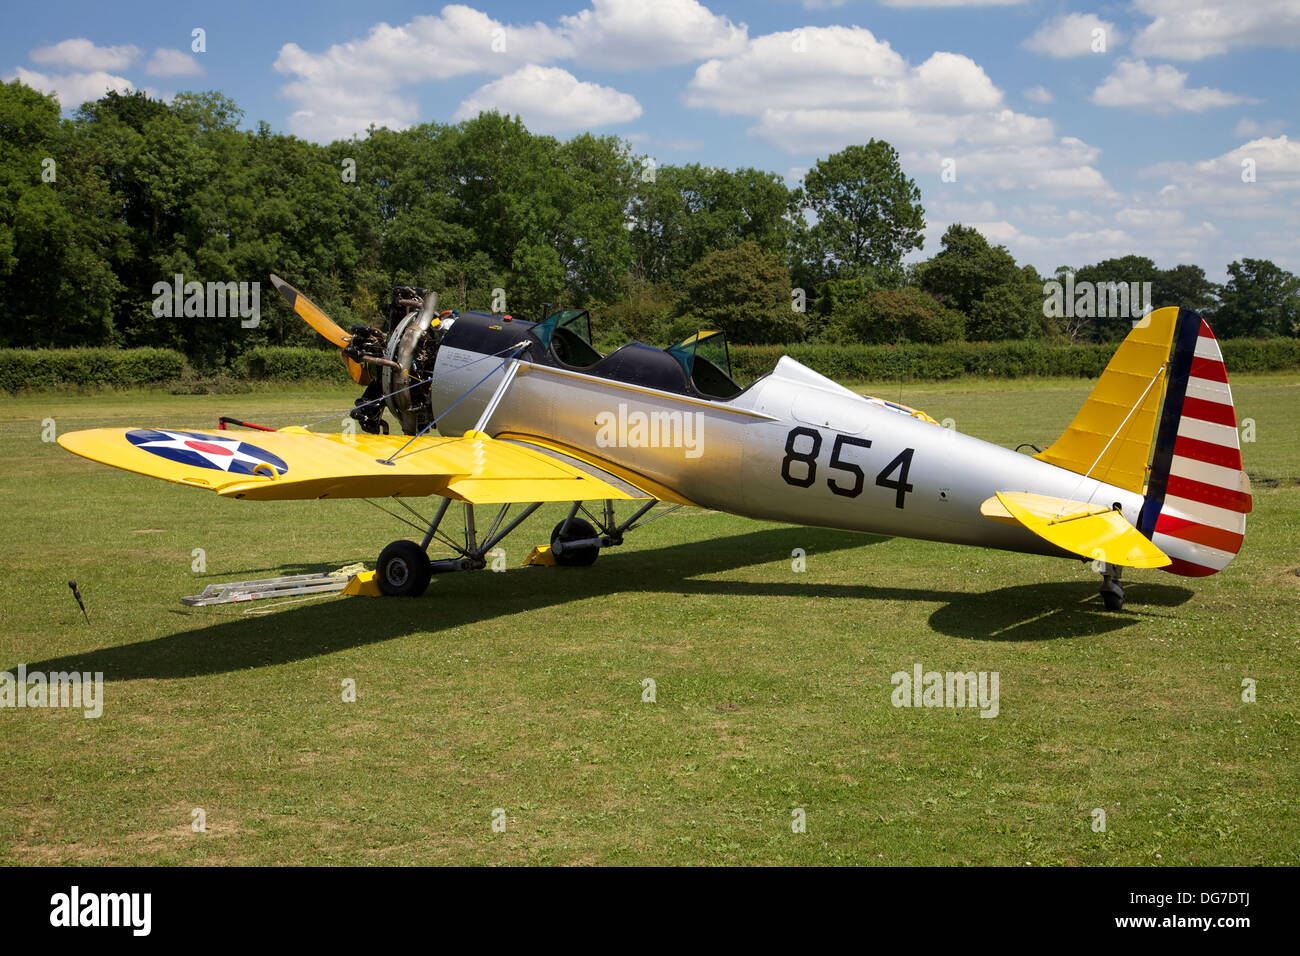 An Americian Ryan PT-22 'Recruit' Trainer, at the Shuttleworth Museum, England - Stock Image